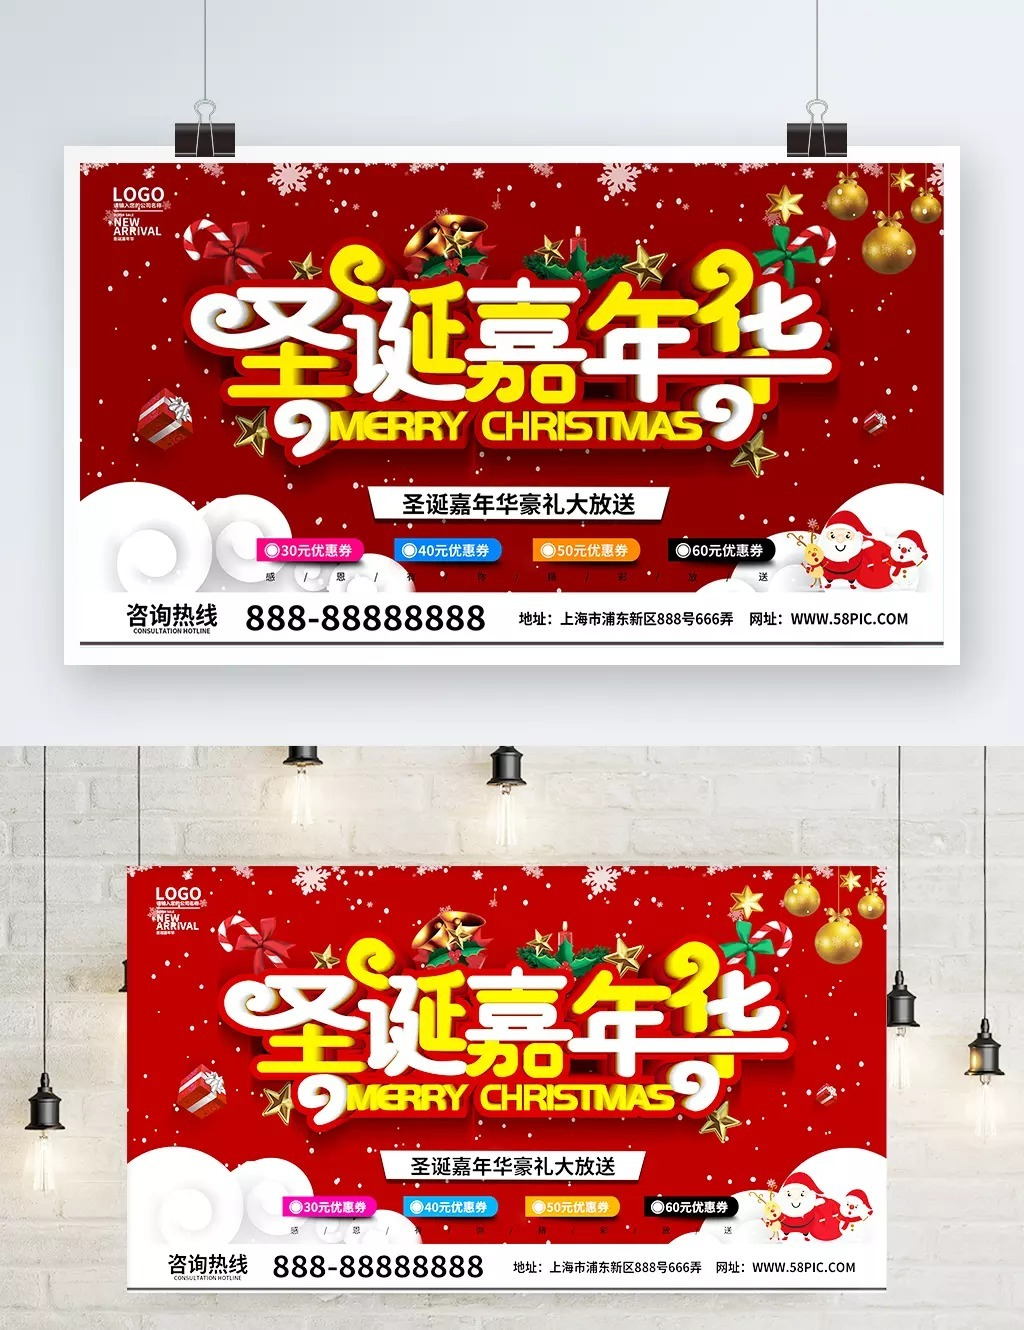 Christmas Carnival Poster.Red Minimalistic Christmas Carnival Poster Template For Free